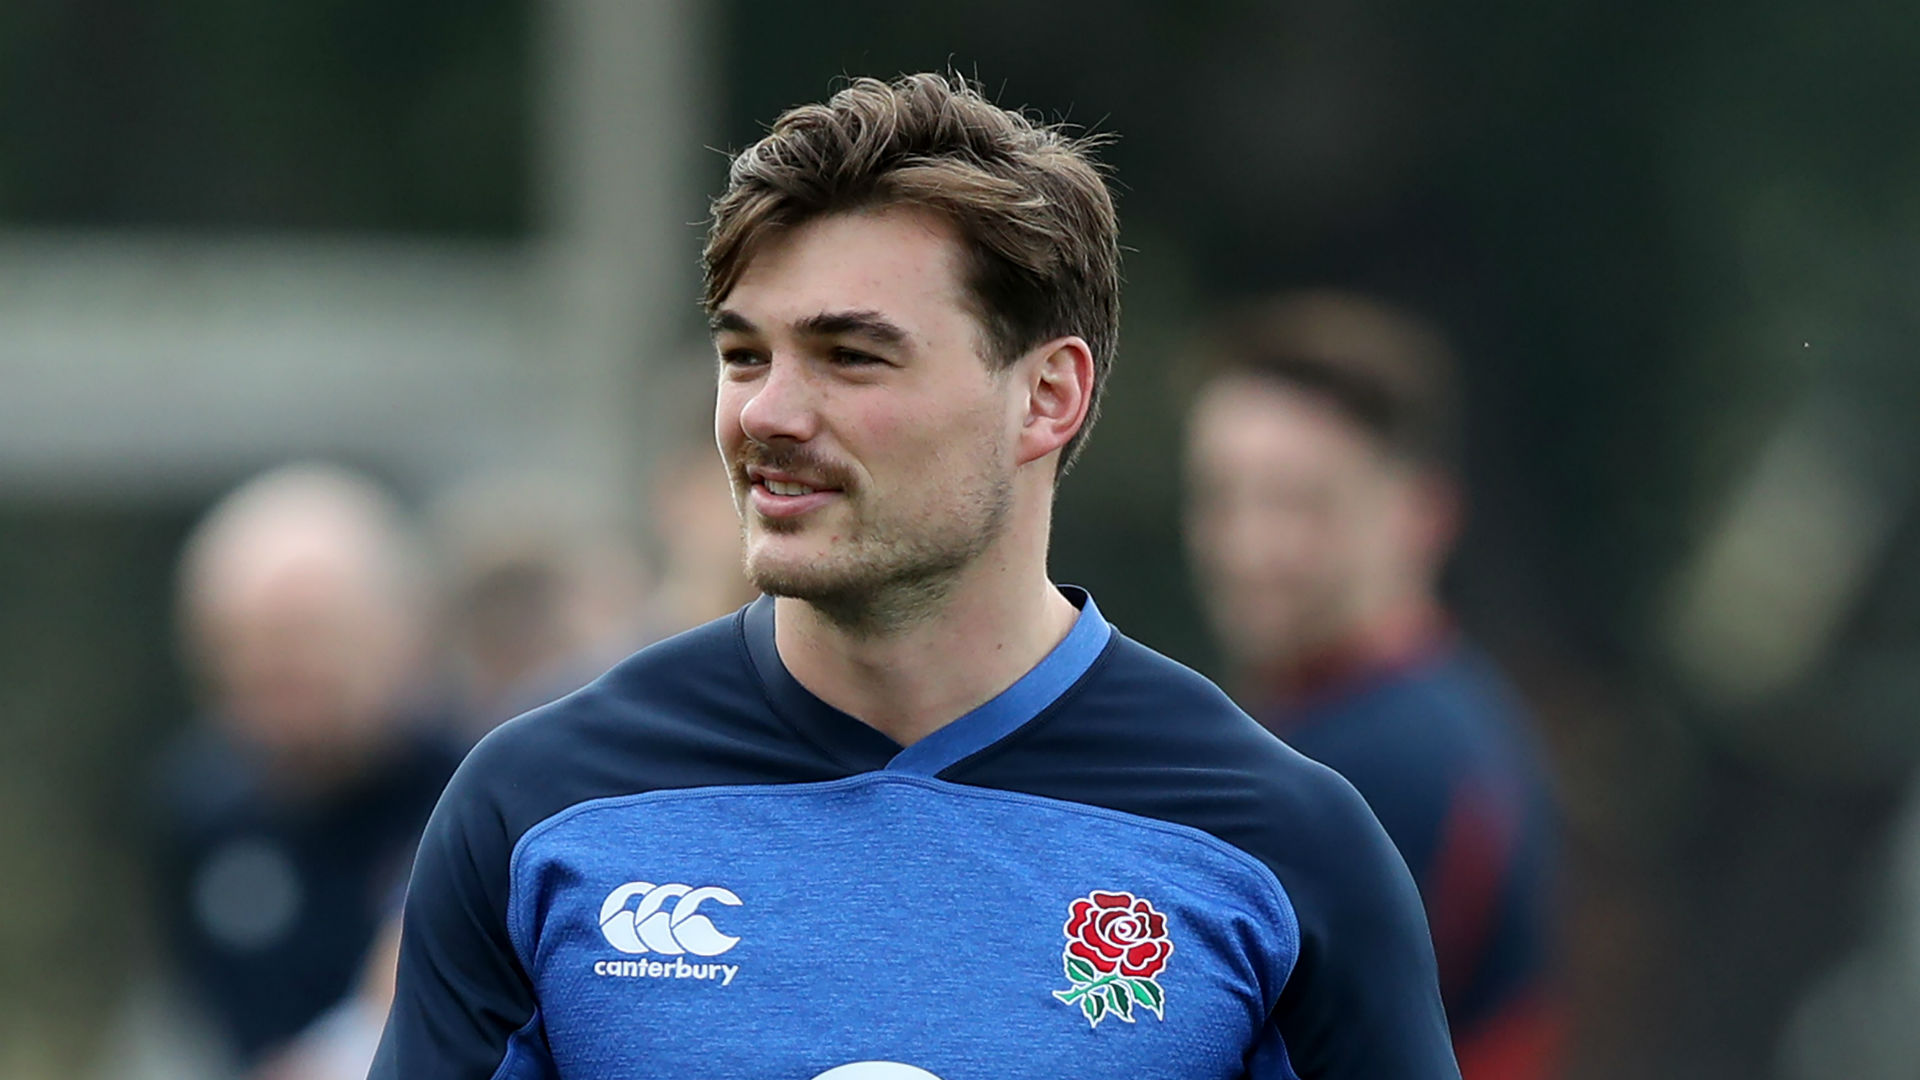 Six Nations 2020: Uncapped Furbank to start at full-back for England